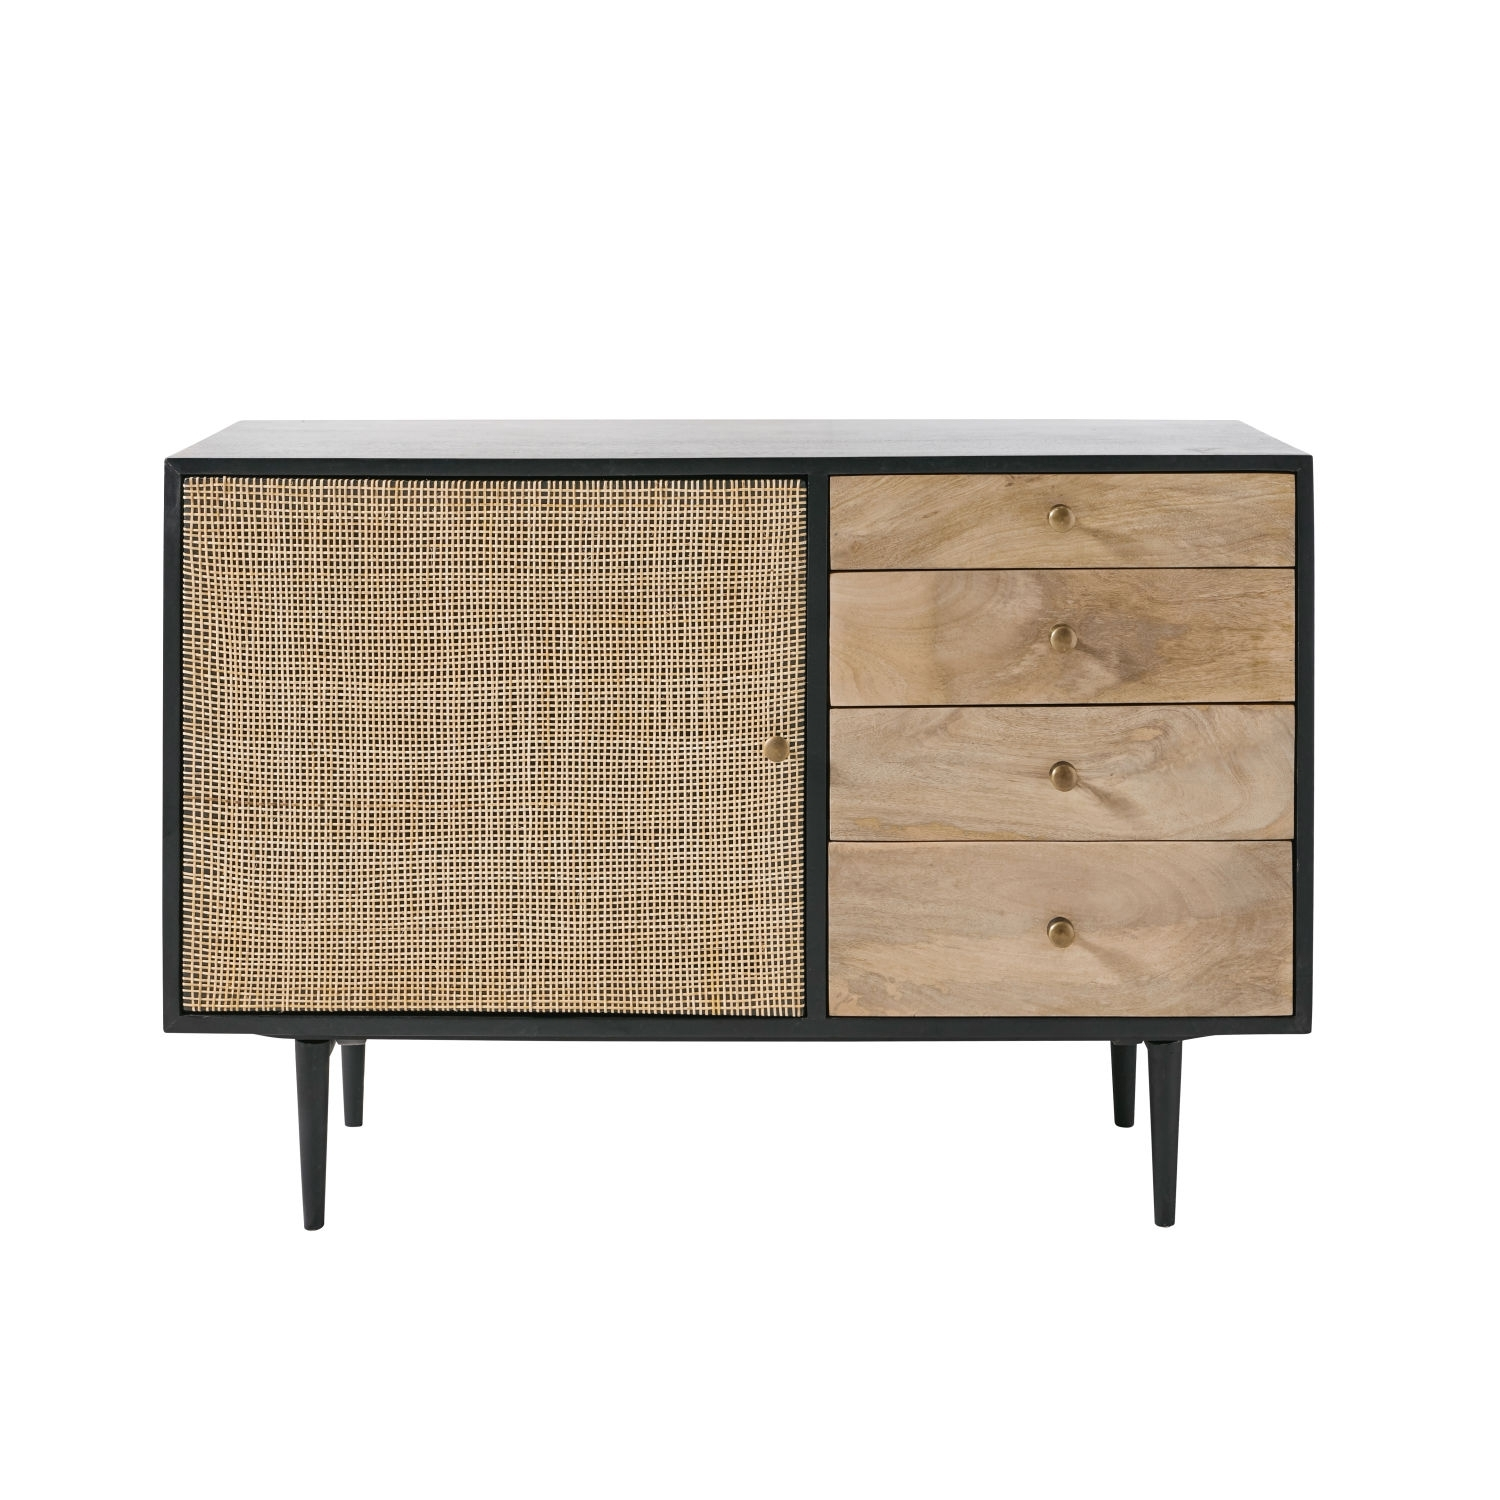 Solid Mango Wood And Acacia 1 Door 4 Drawer Sideboard | Maisons Du Monde With Newest Acacia Wood 4 Door Sideboards (#17 of 20)